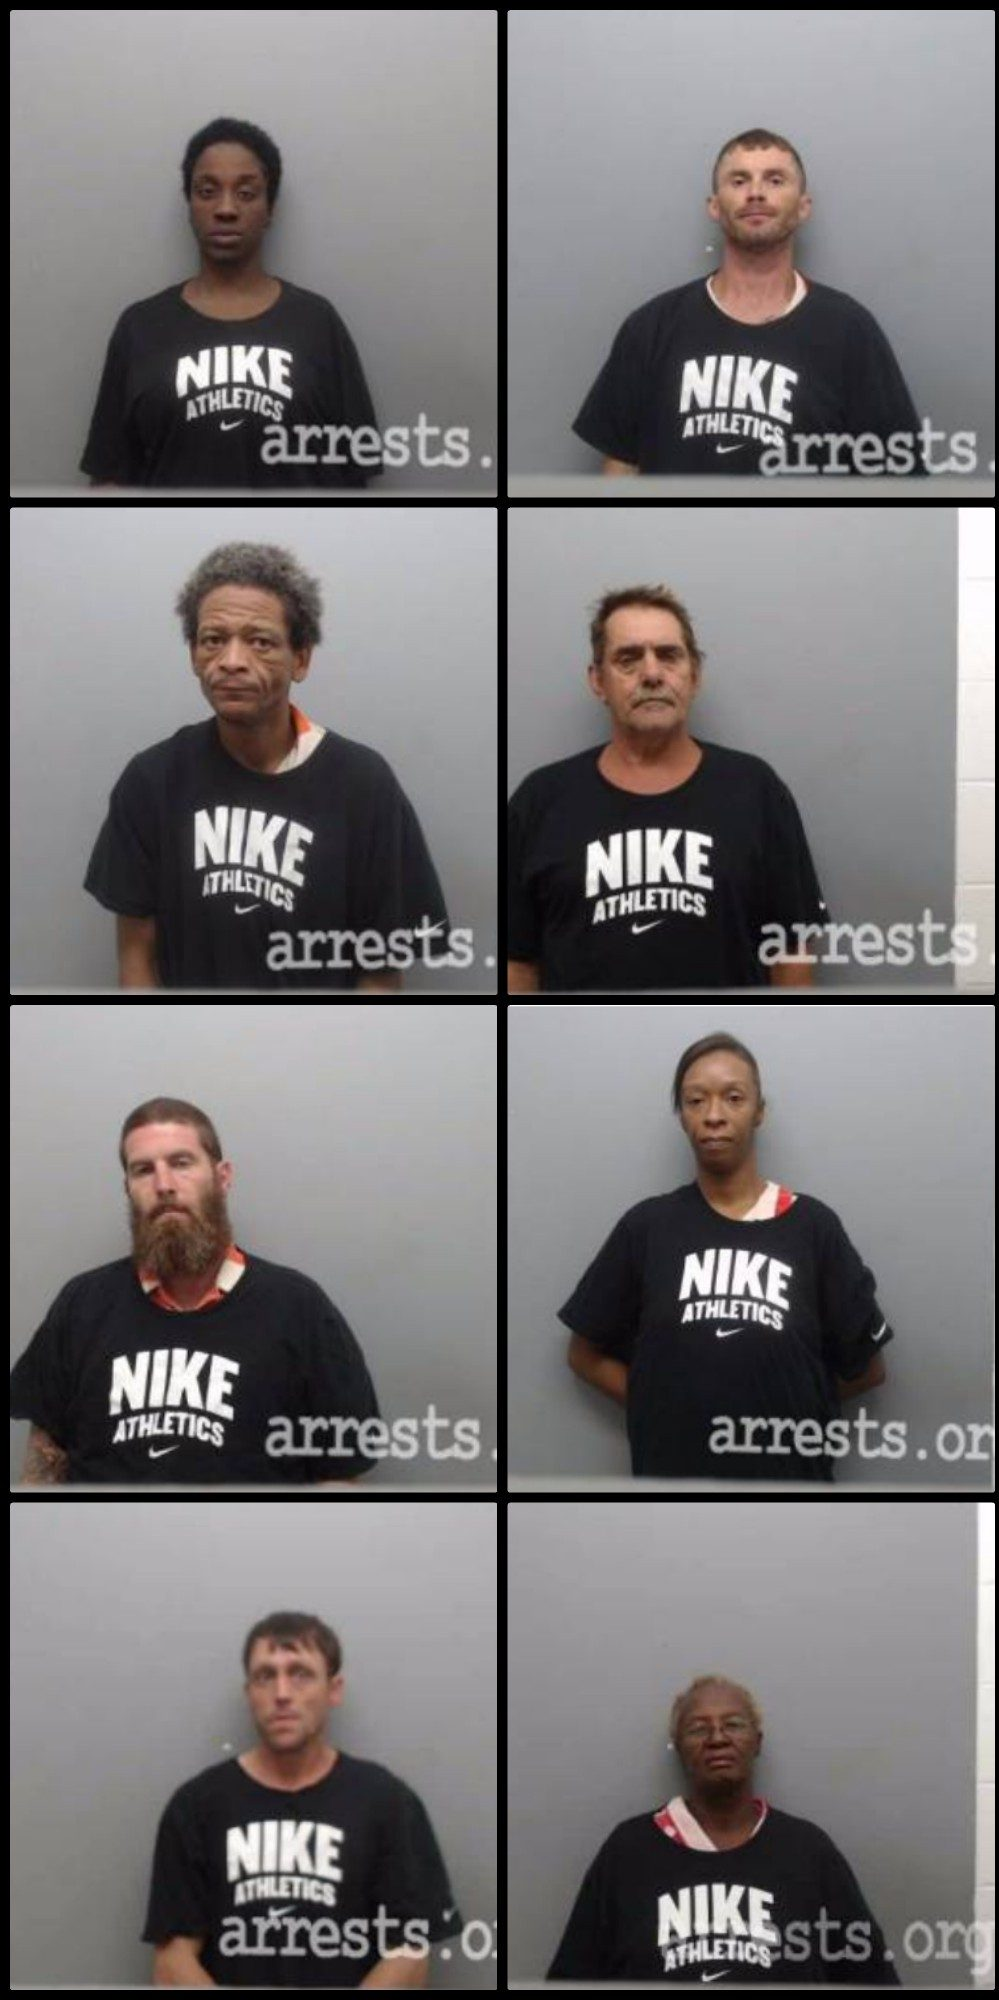 Did a Sheriff's Dept  Dress Arrestees in Nike Shirts for